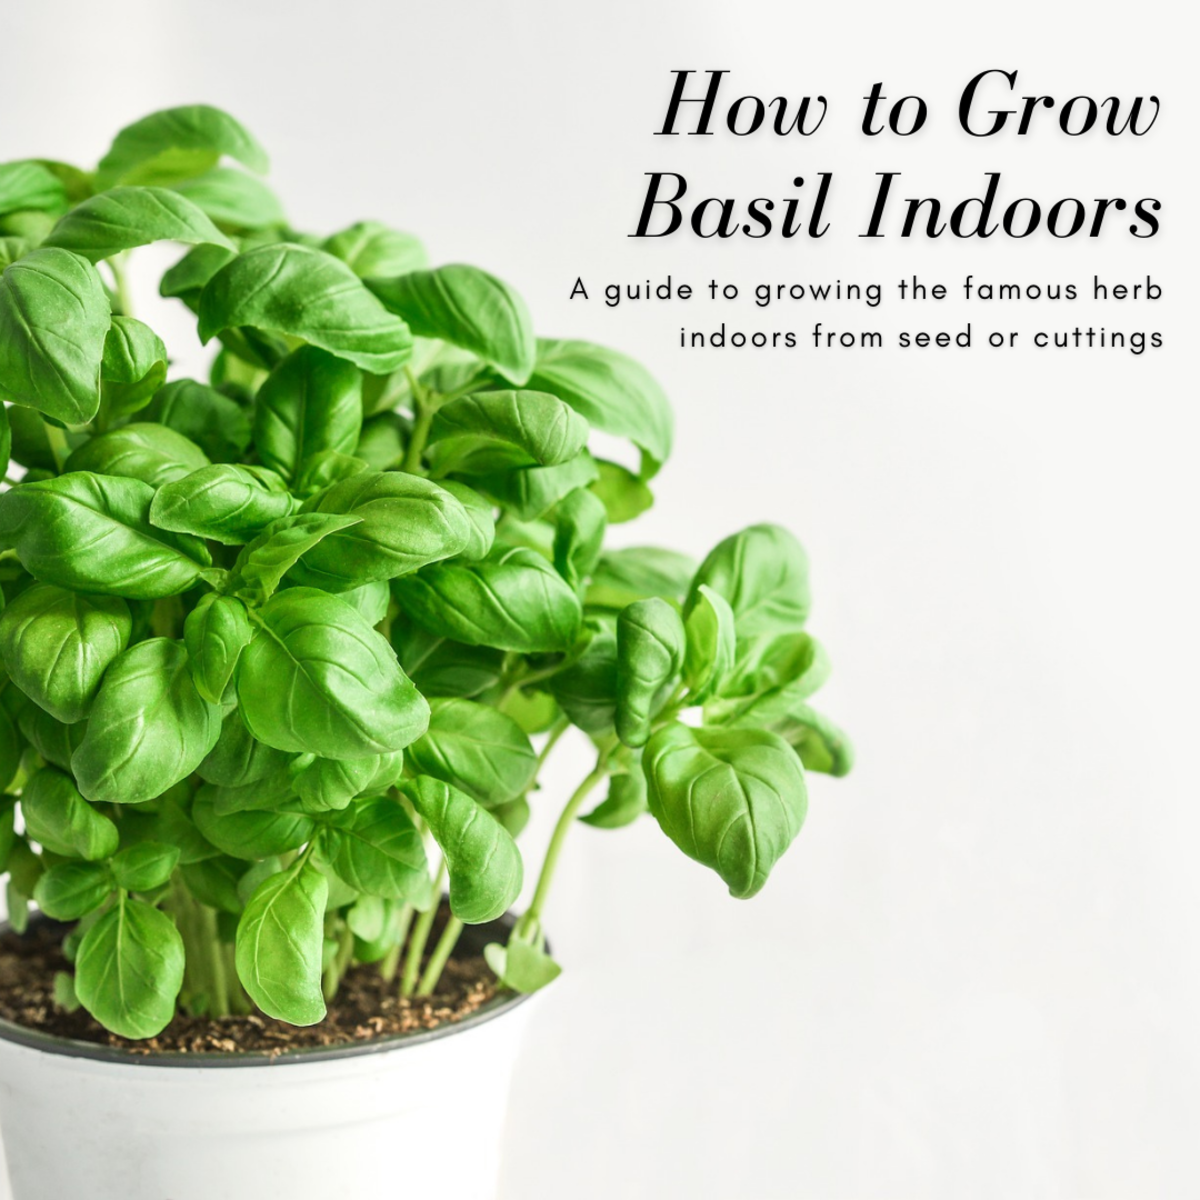 This guide will show you how to grow a delicious basil plant indoors from seed or cuttings.